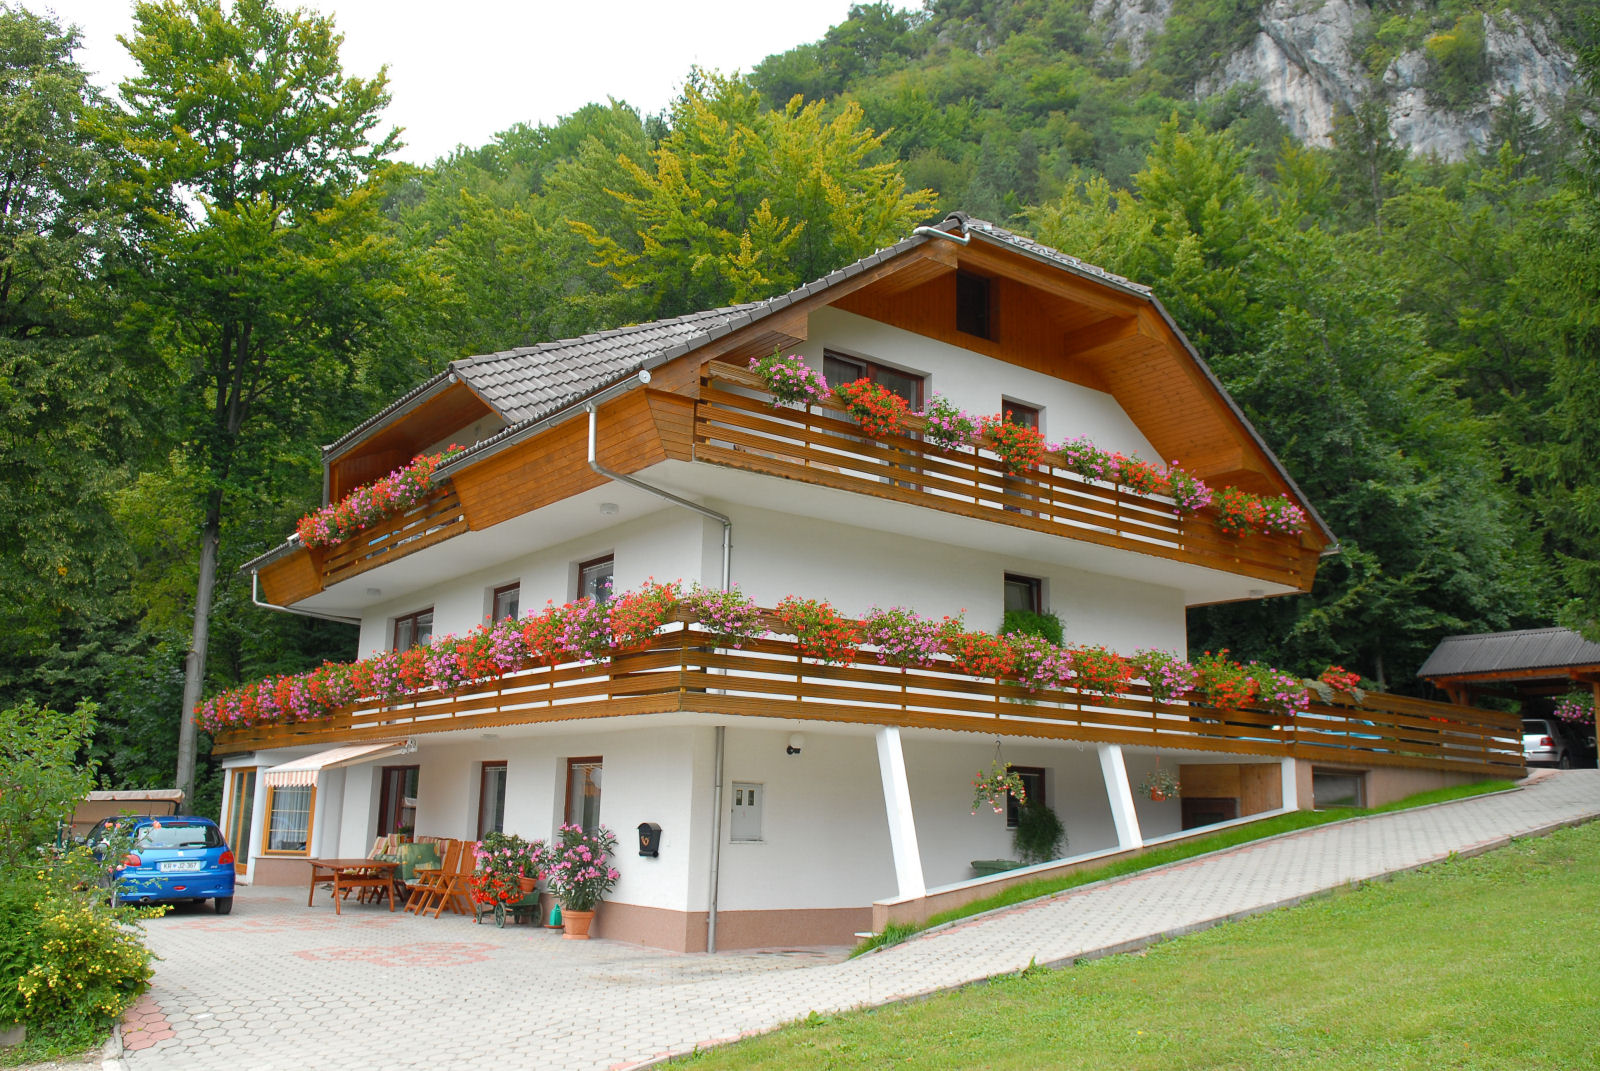 Fine Stay Apartments are located near Bled in Slovenia